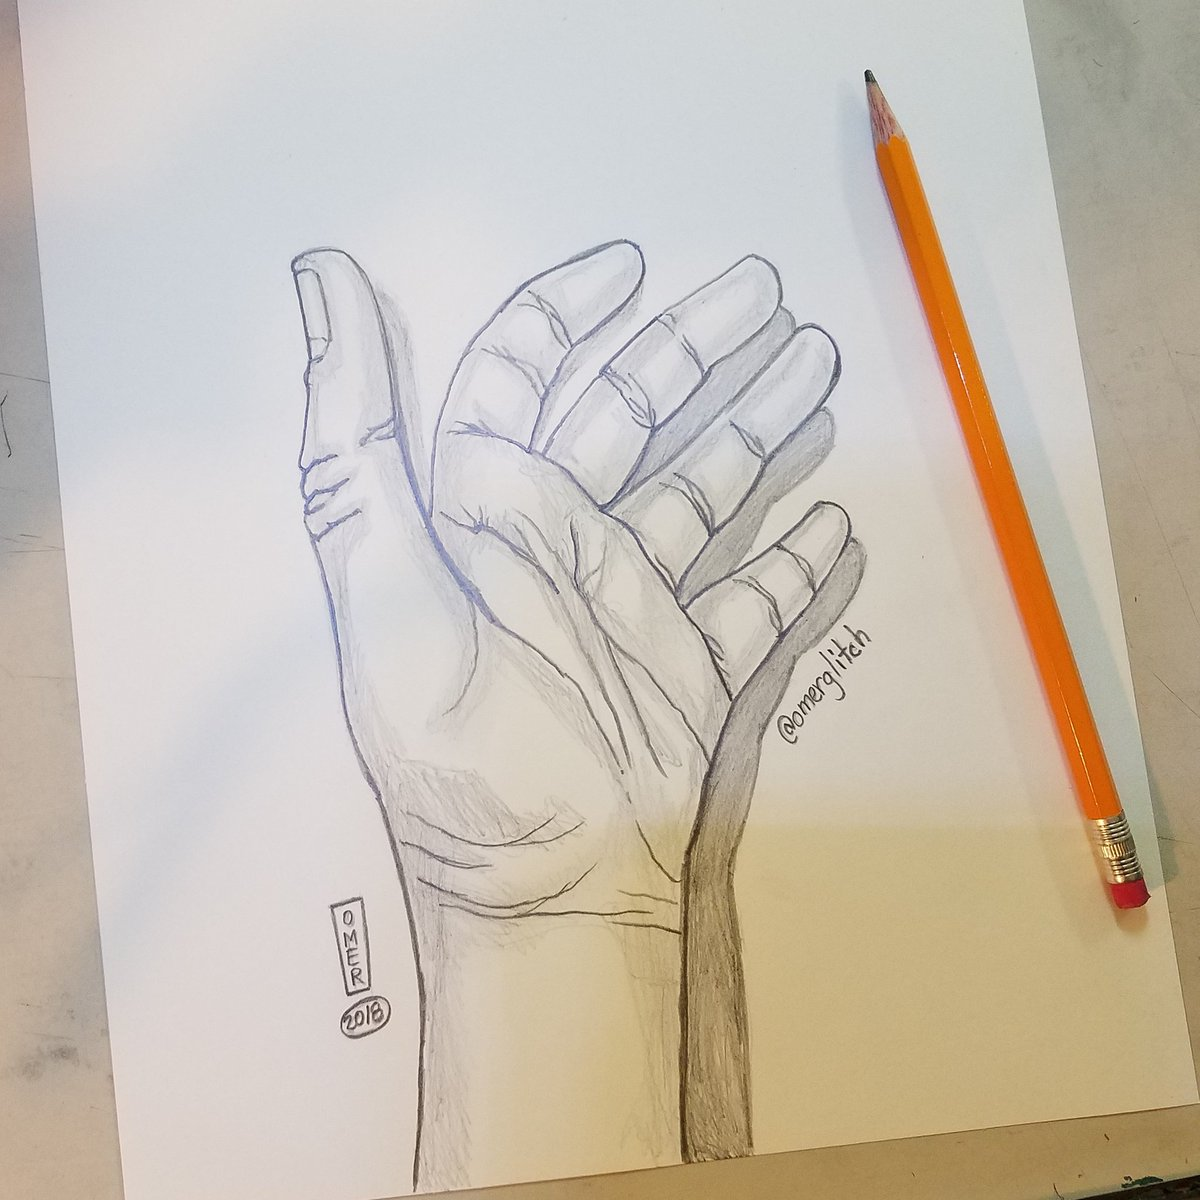 omer garcia iii on twitter contour hand drawing with shading